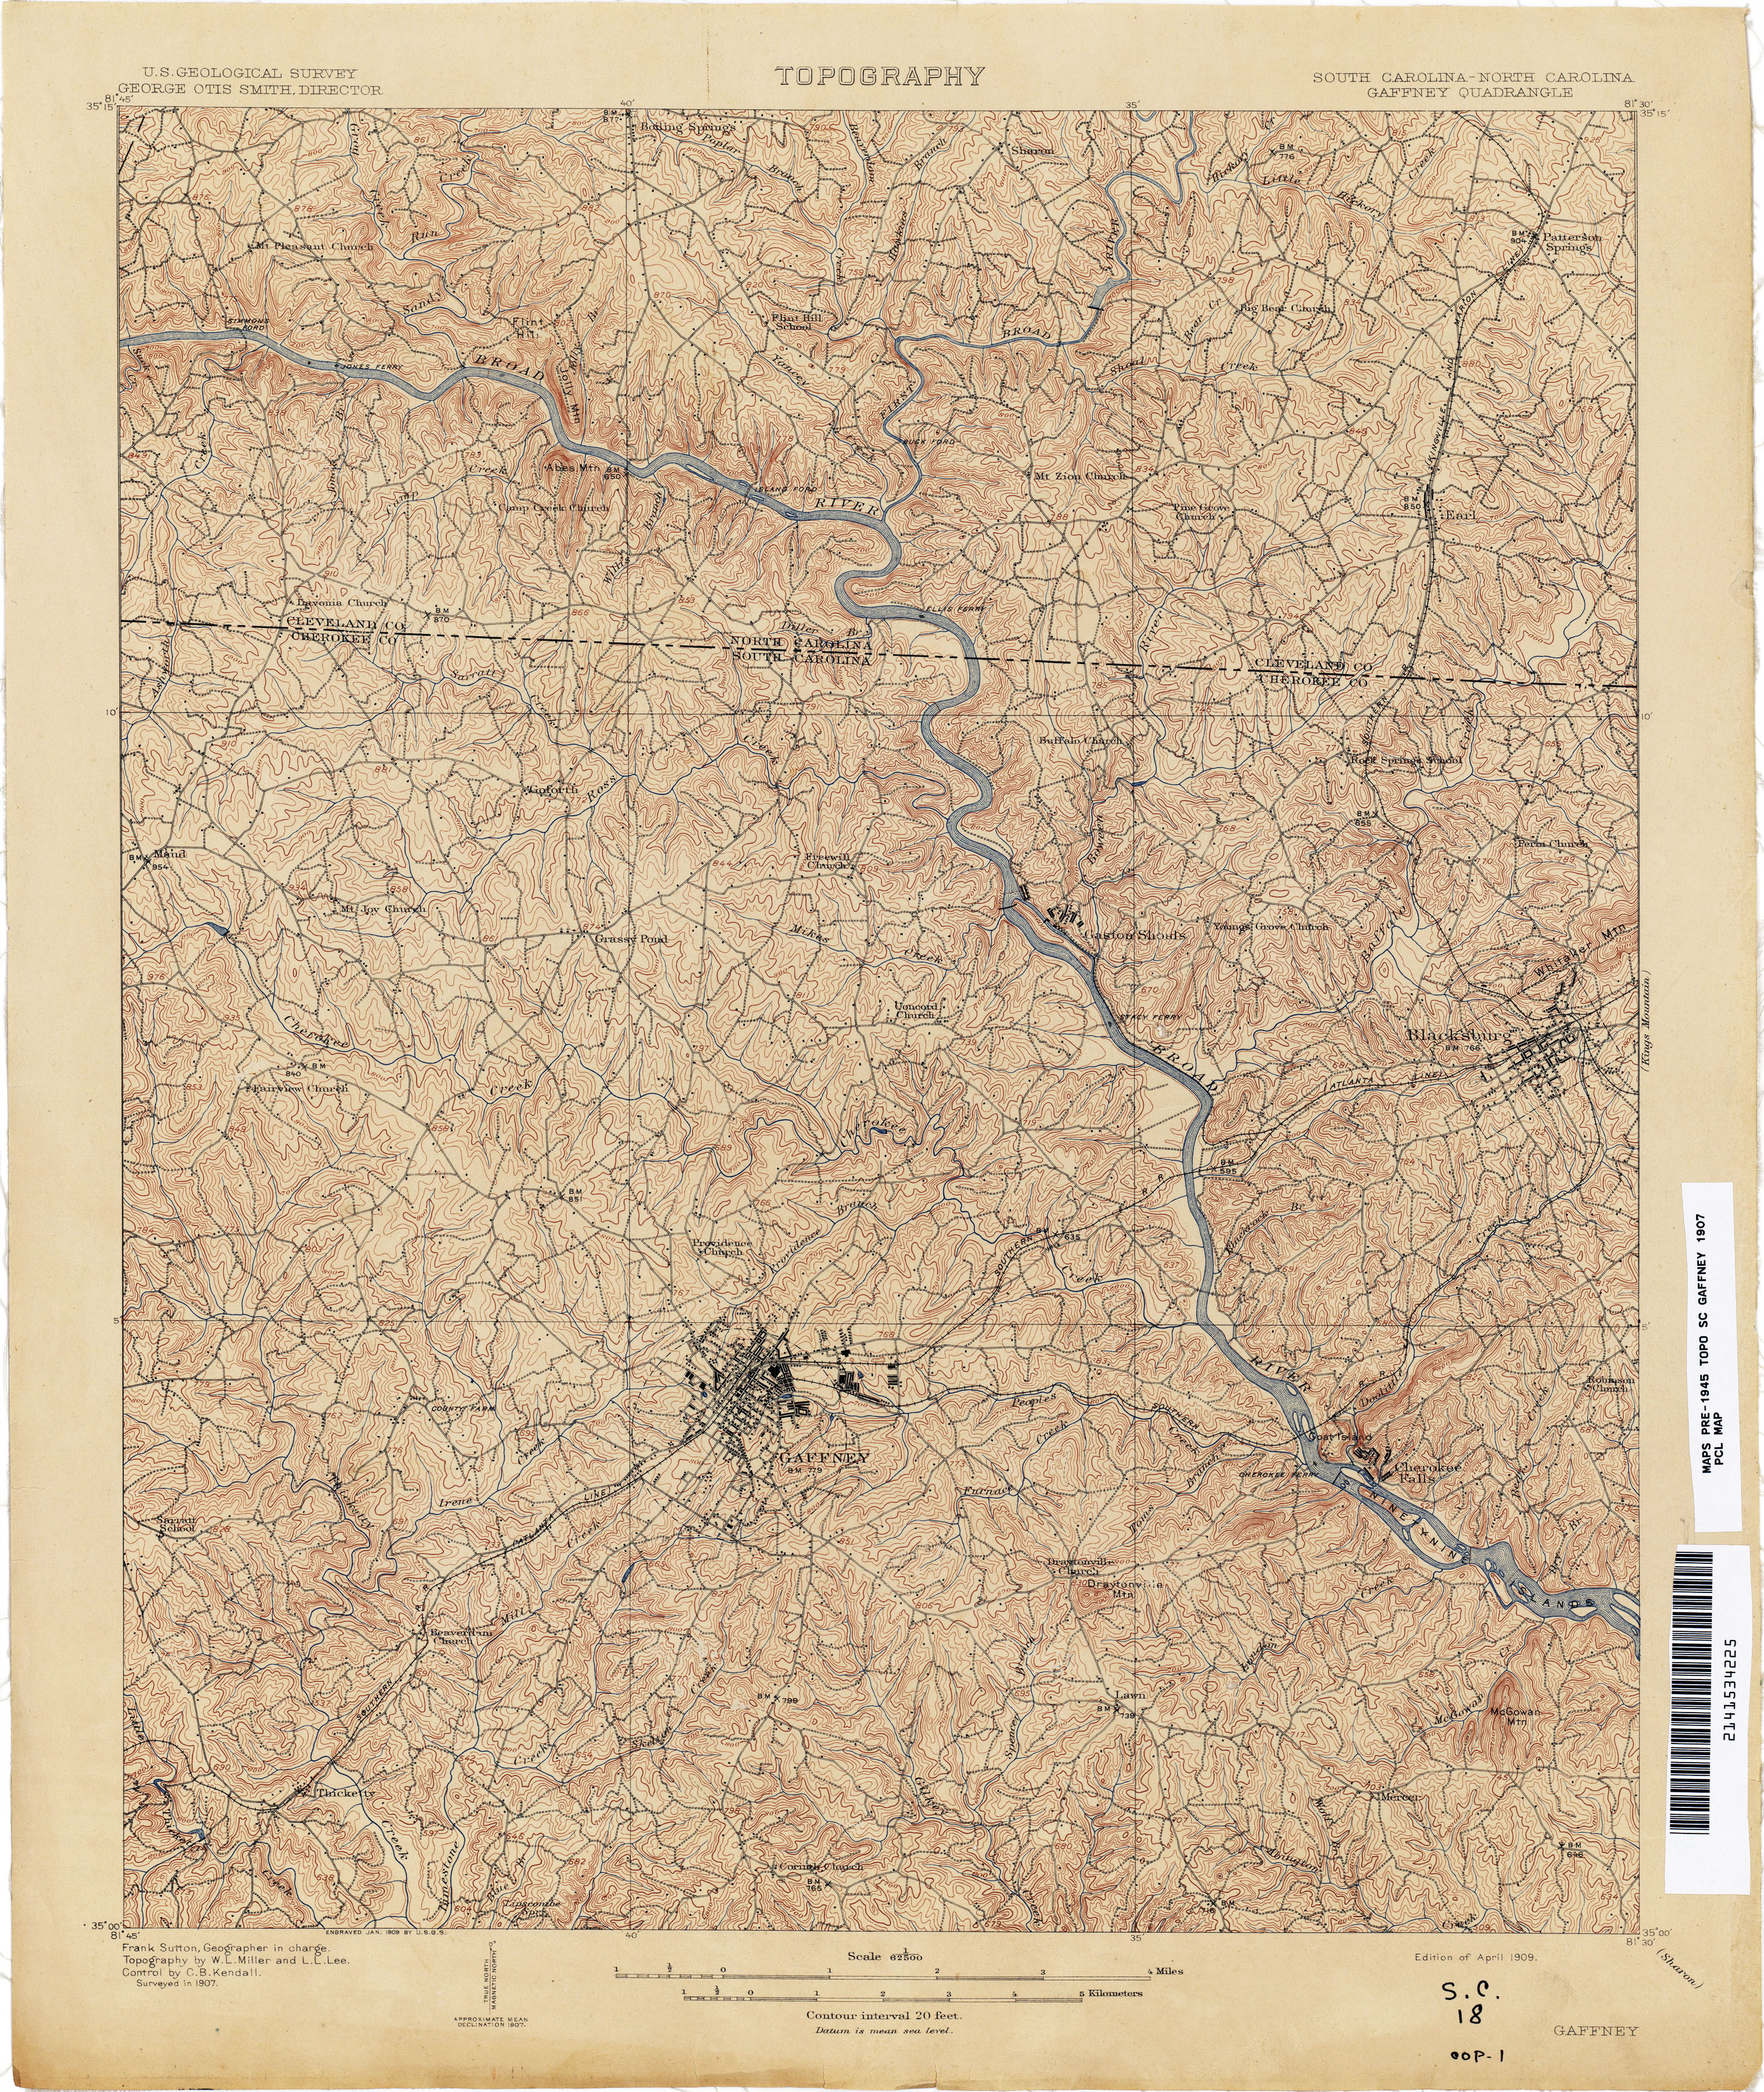 South Carolina Historical Topographic Maps - Perry-Castañeda Map ...